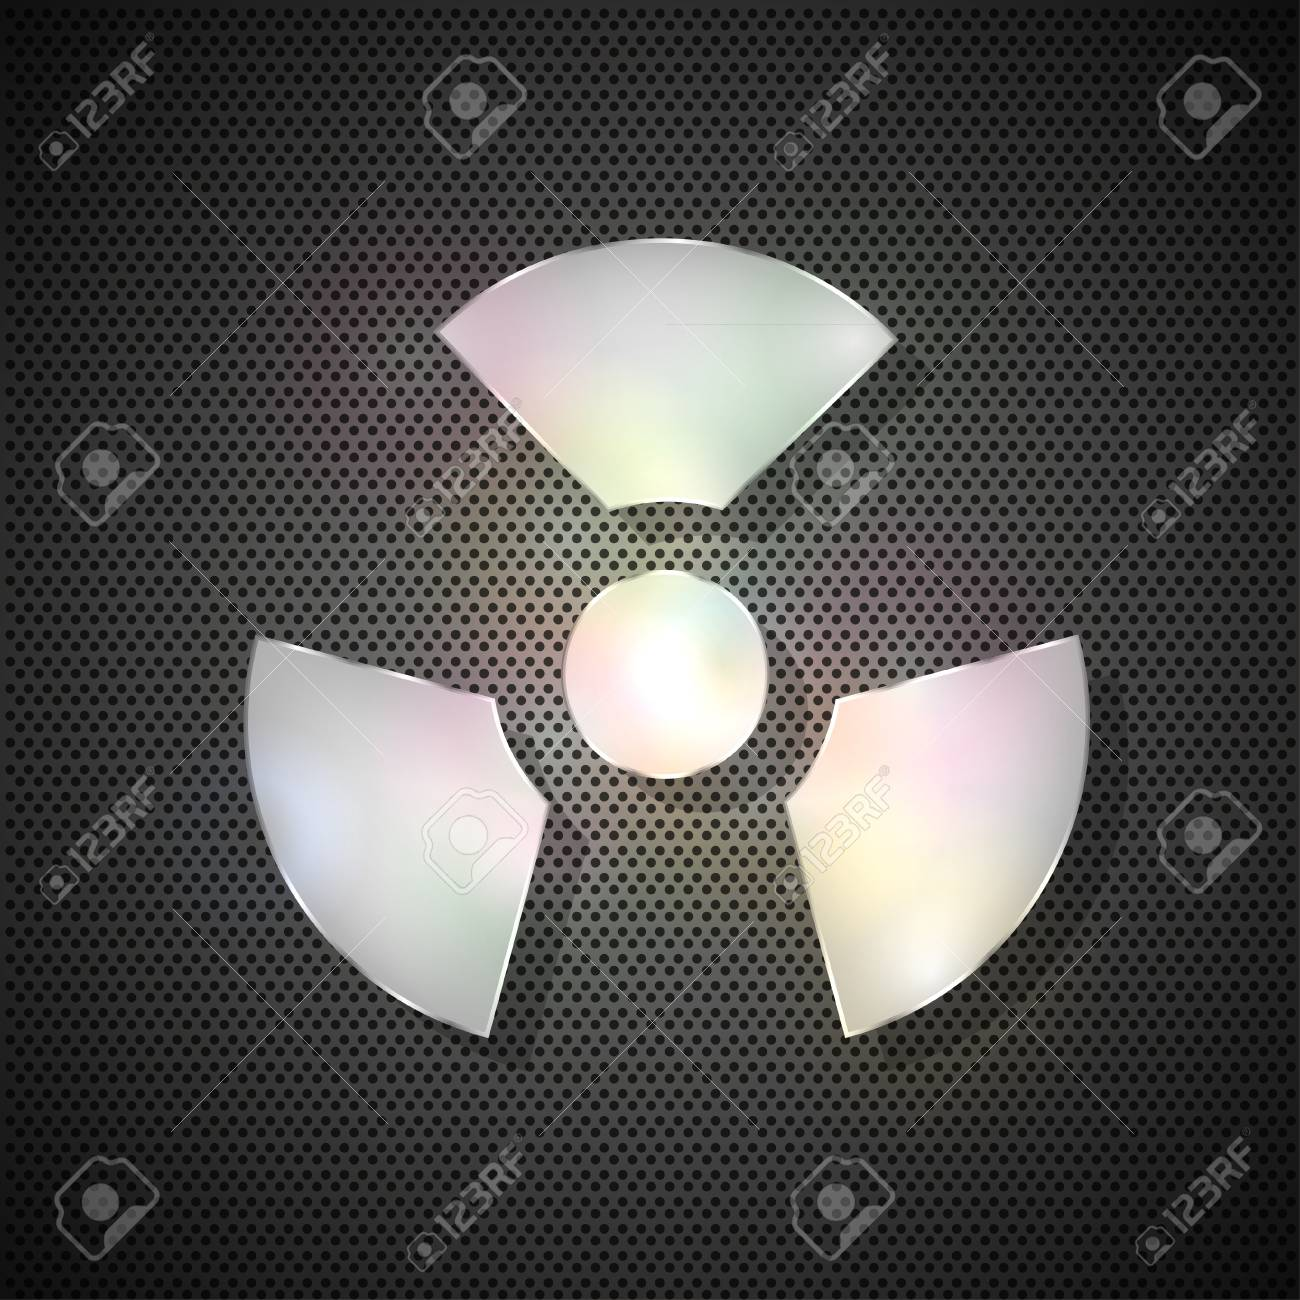 radiation symbol on metal background Stock Vector - 11909554